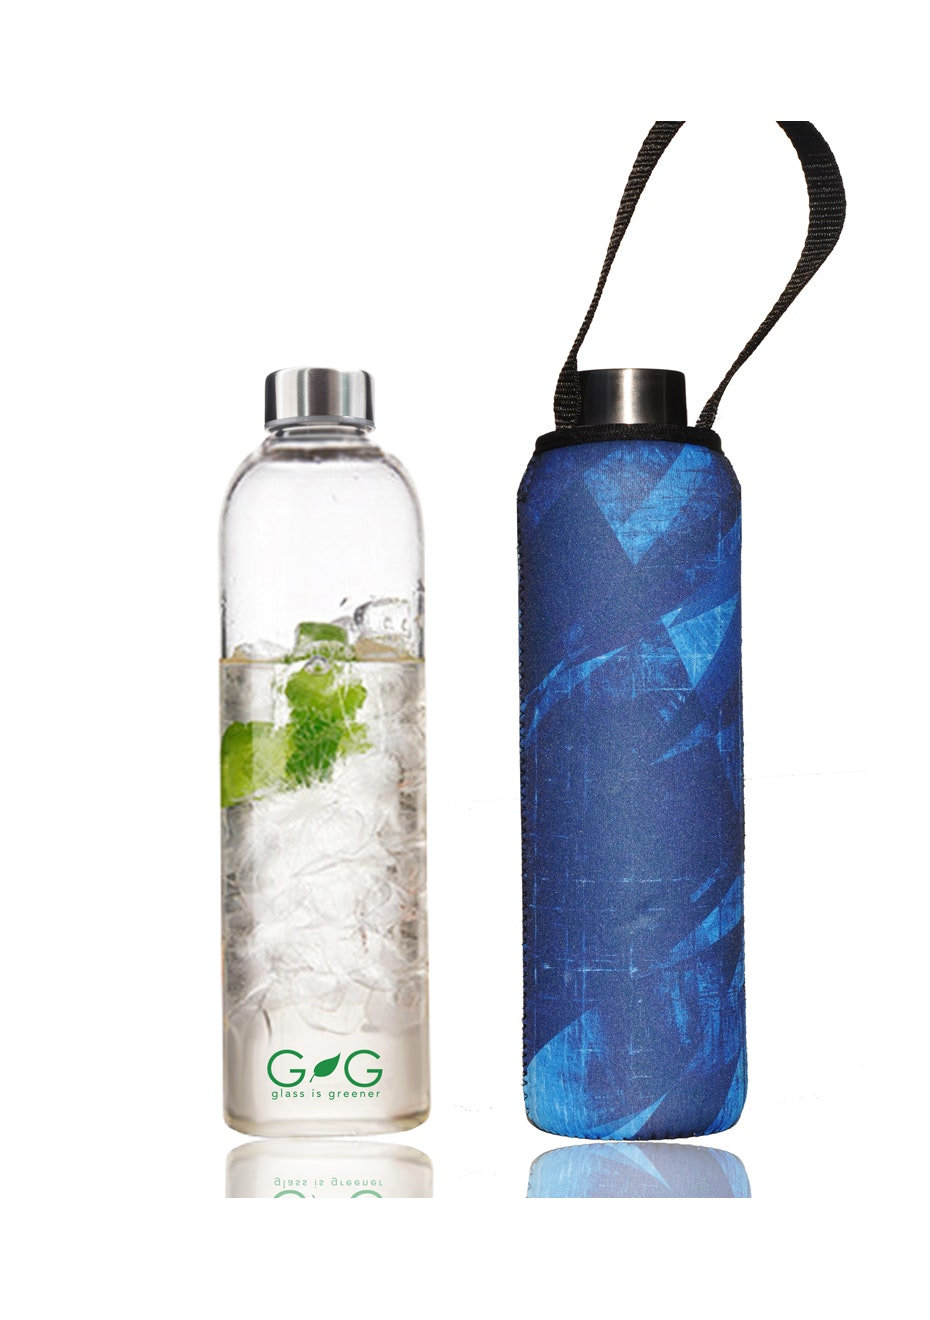 BBBYO - Glass Is Greener Bottle 750 ml + Carry Cover (Time Print) -750 ml